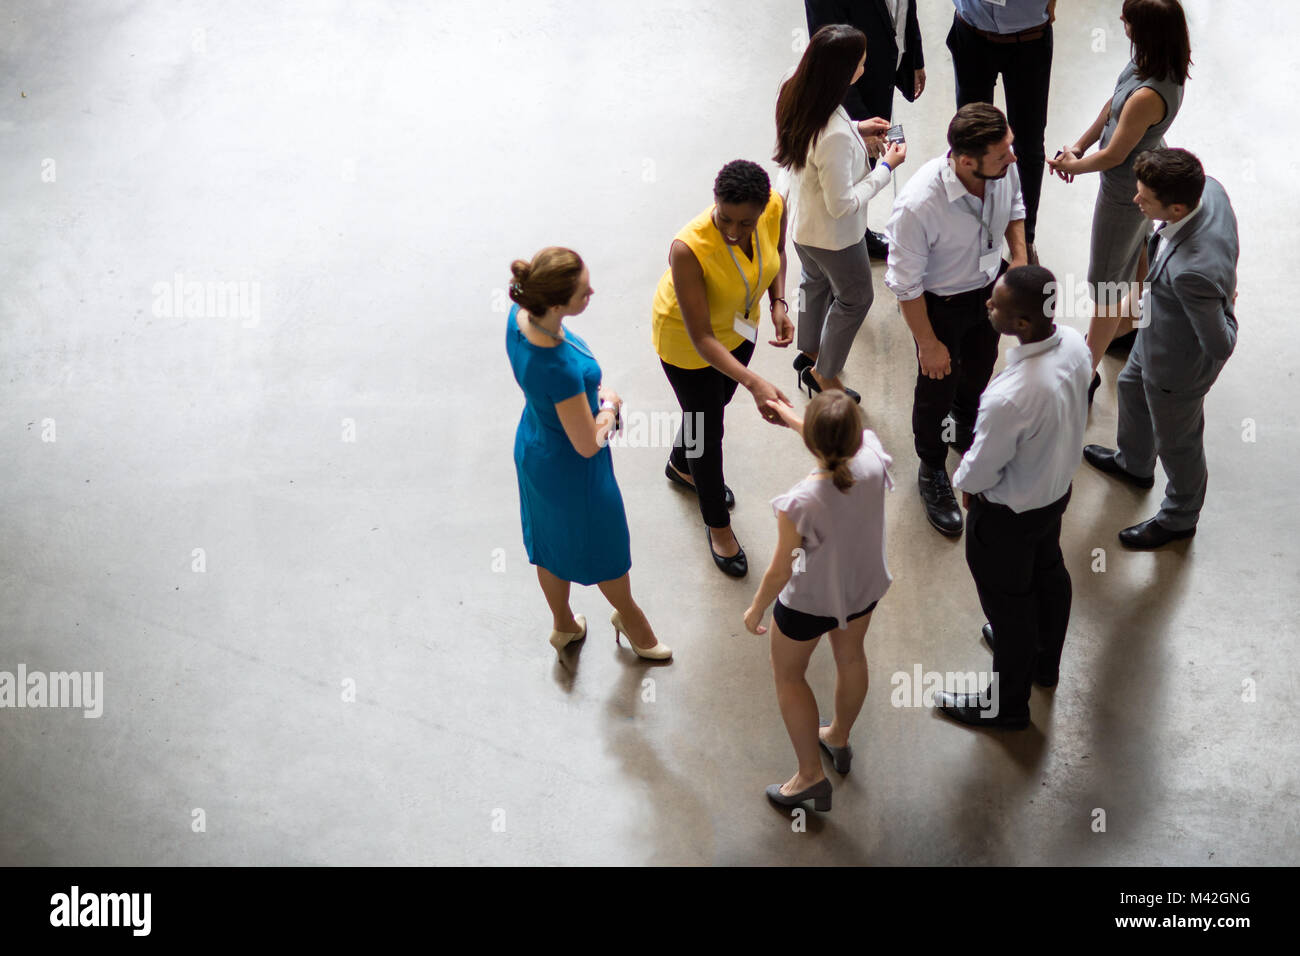 Overhead shot of a networking event - Stock Image